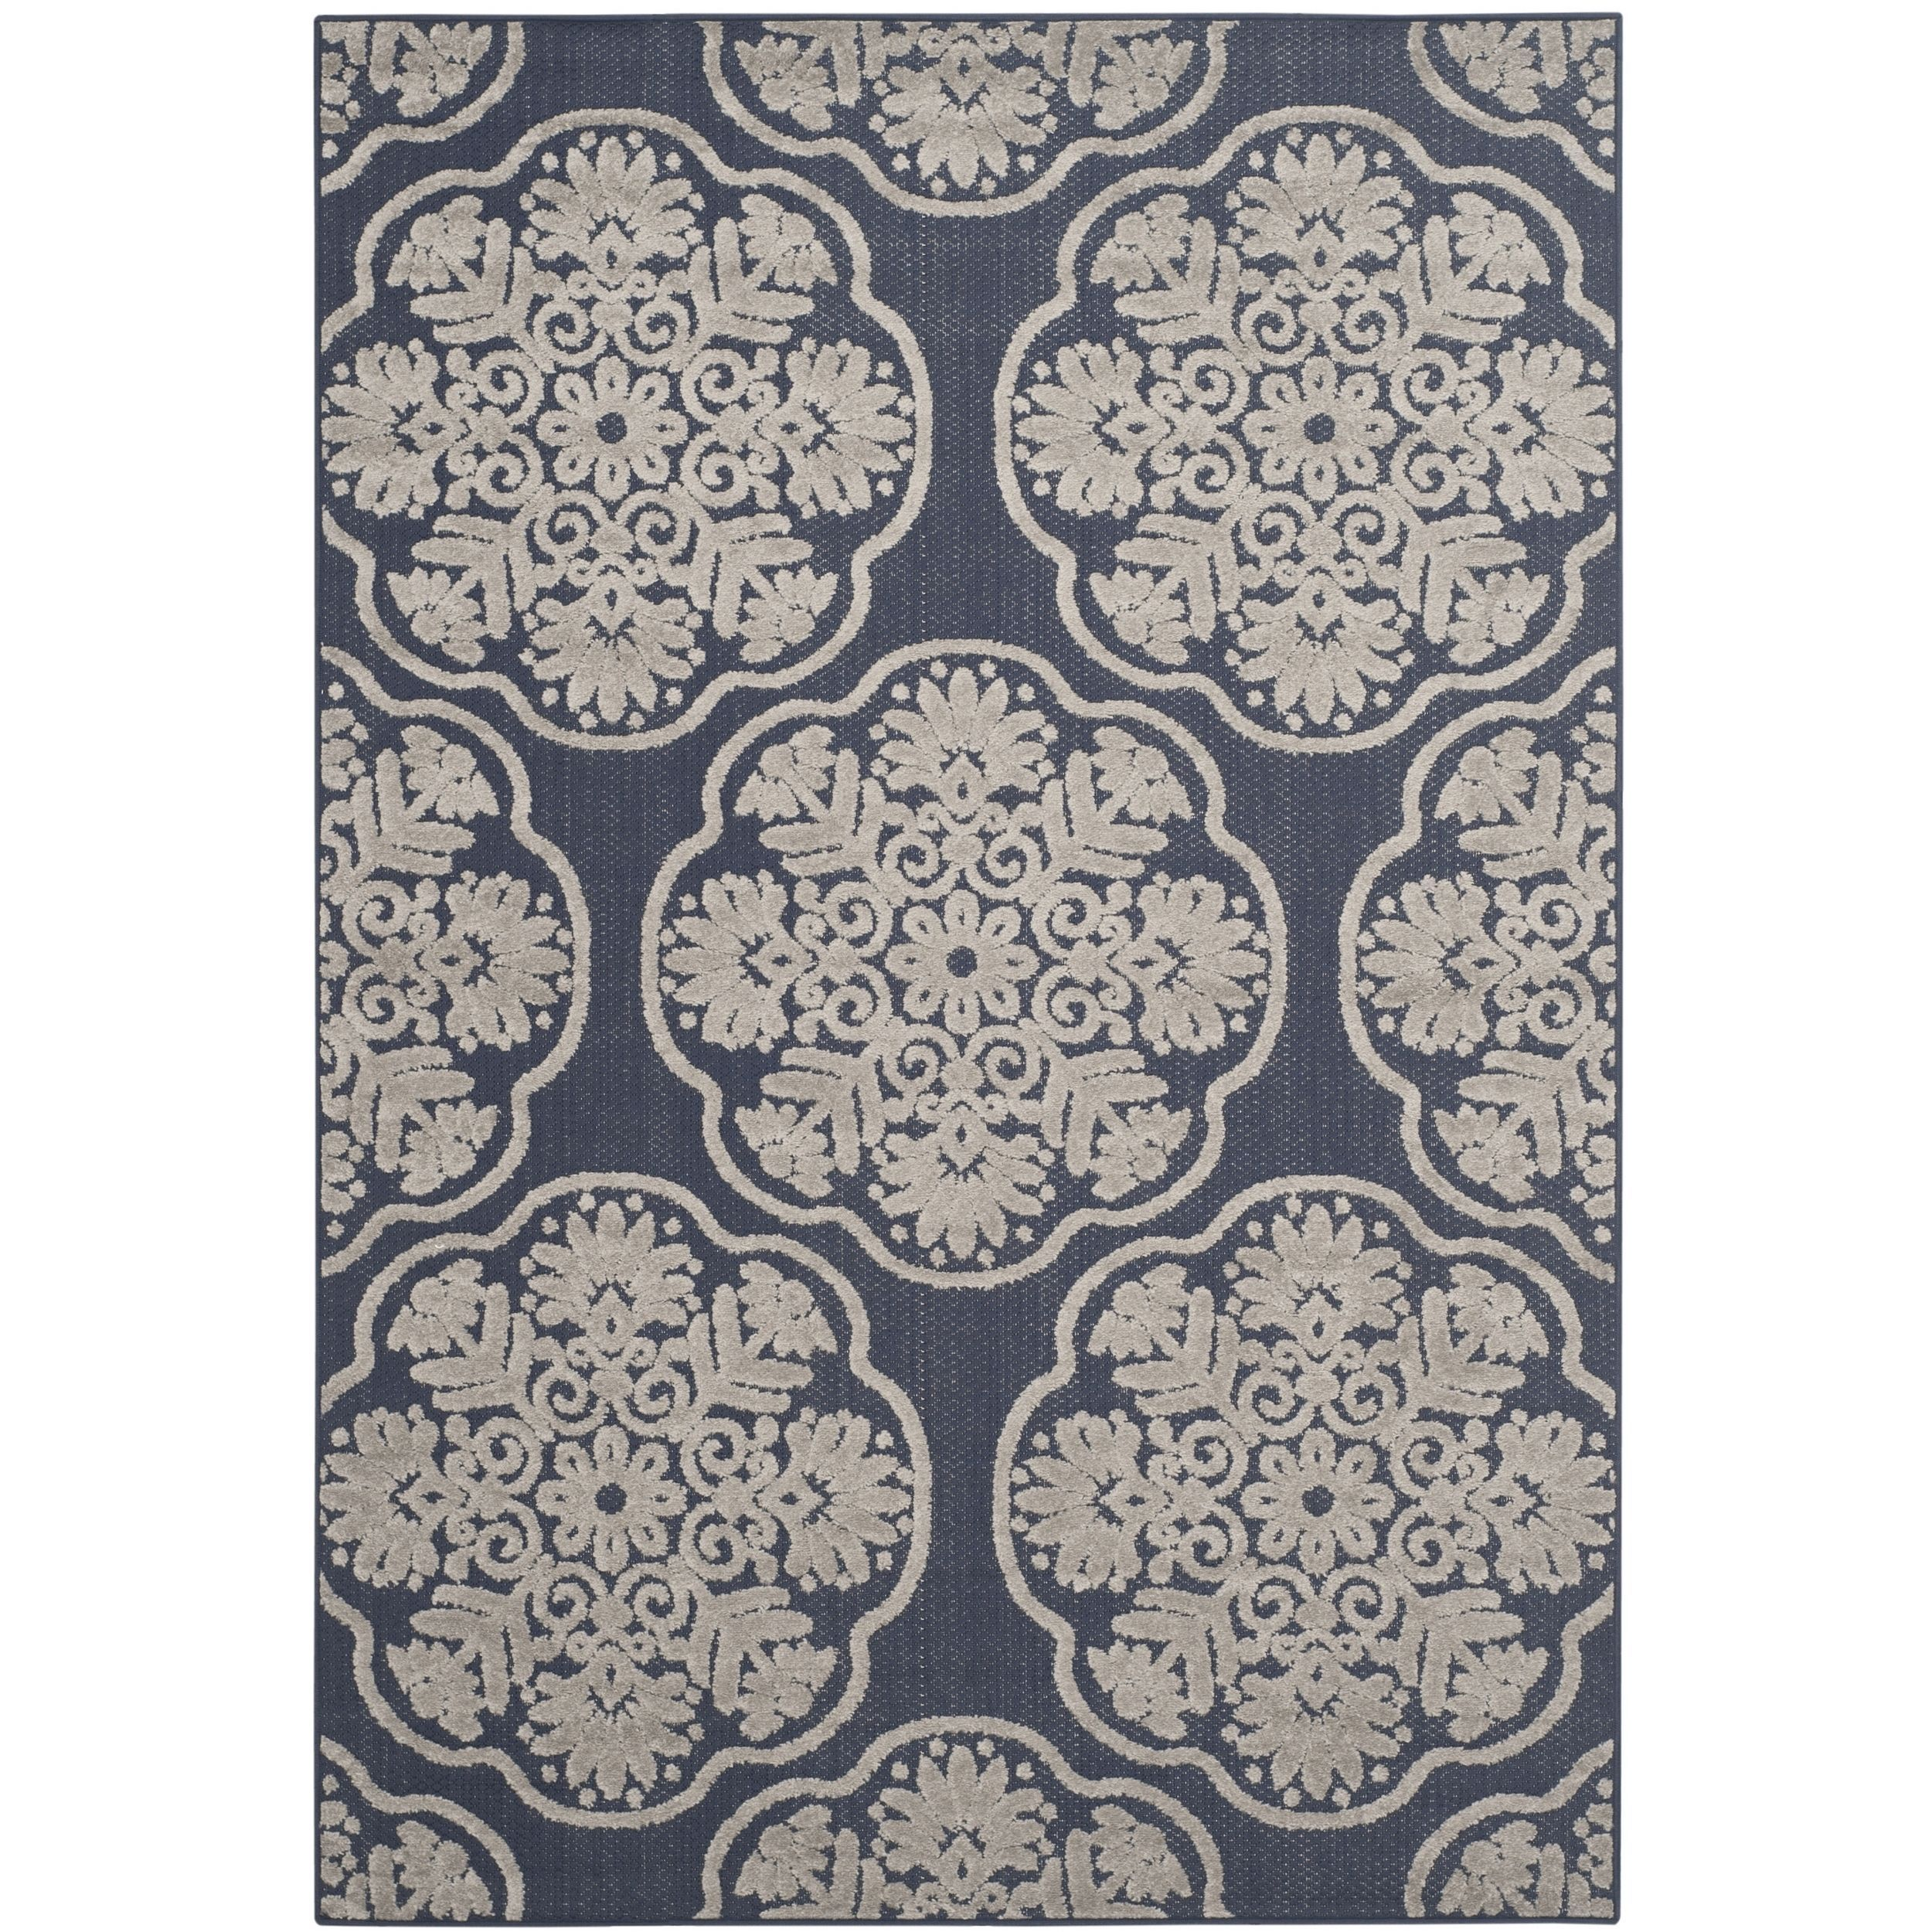 rugs update henderson living tudor blog emily english my room modern cottage